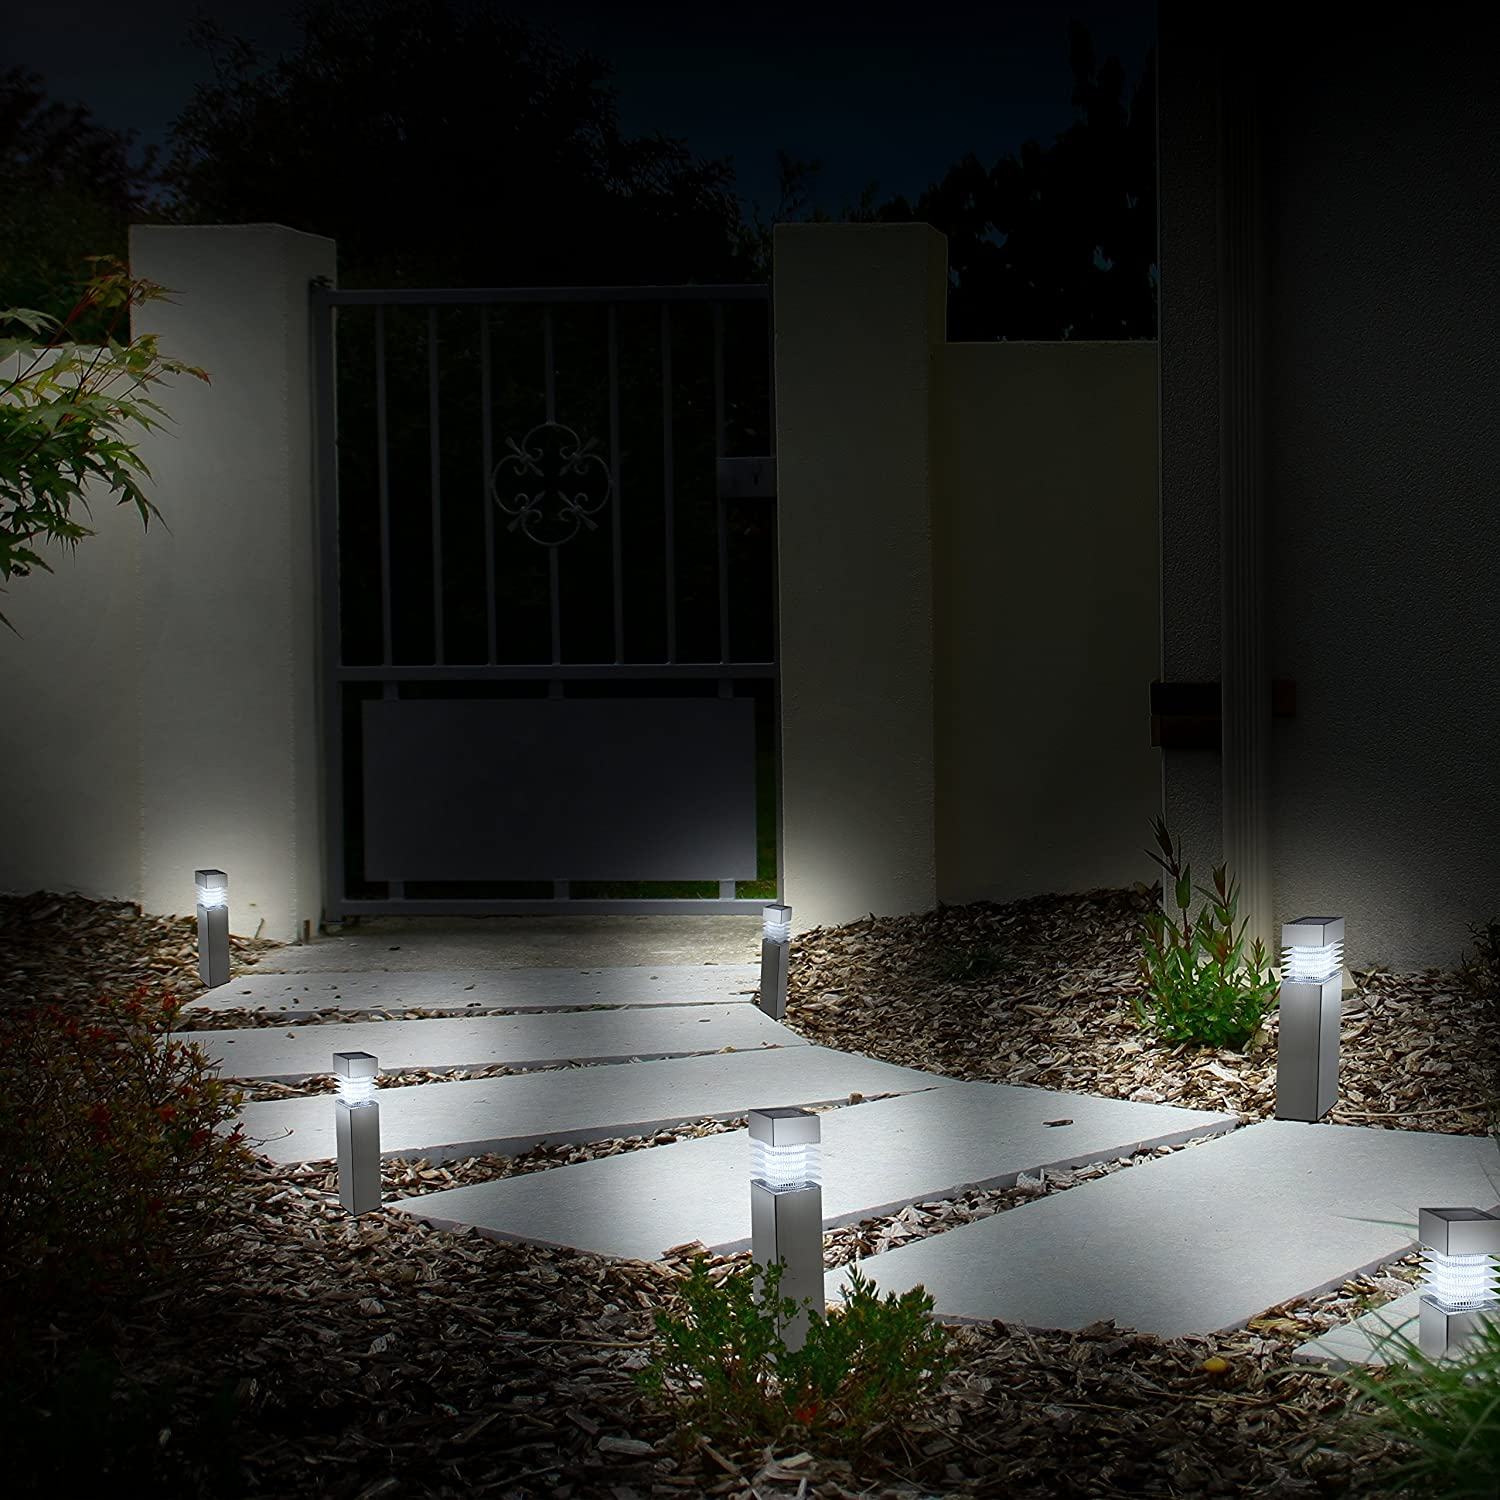 Outdoor Solar Lights for Walkway Pack of 8 Morvat LED Solar Pathway Lights Waterproof Outdoor Solar Landscape Lights Stainless Steel and Durable Plastic Garden Driveway Lights White Light